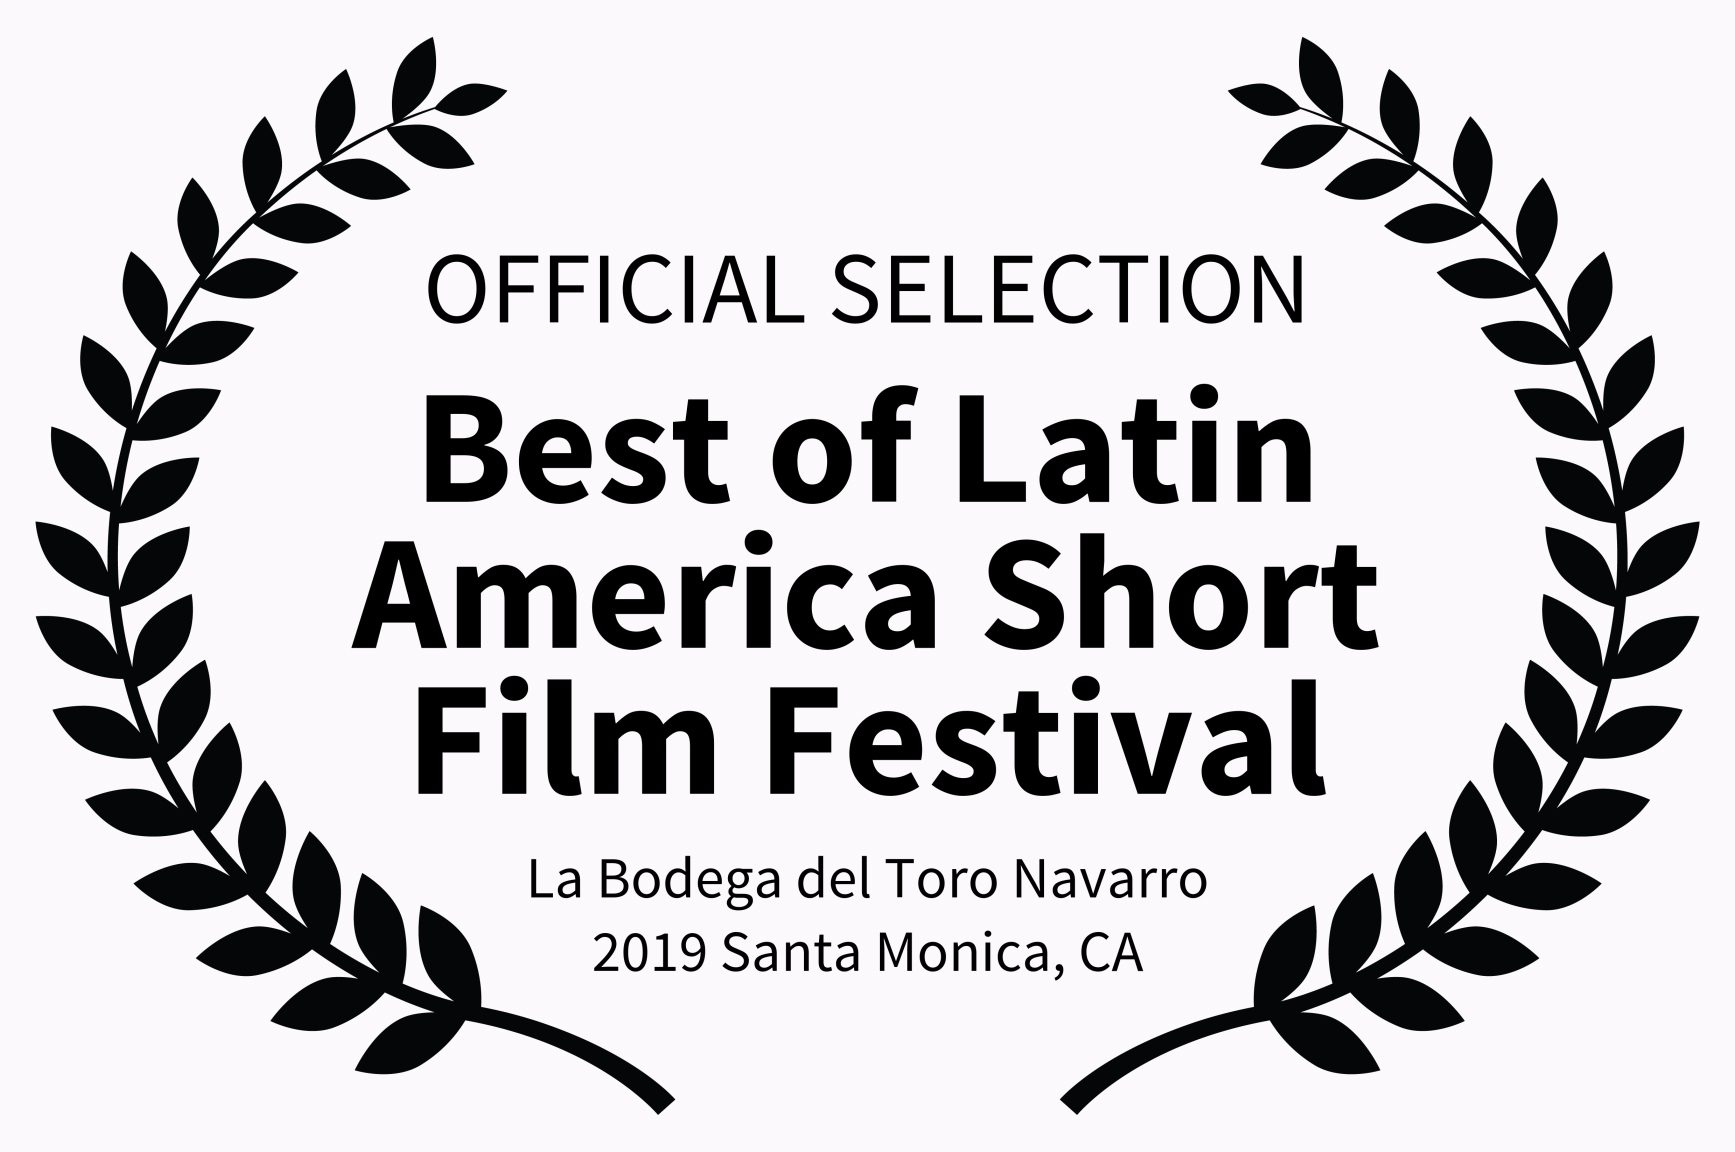 OFFICIAL SELECTION - Best of Latin Ameri